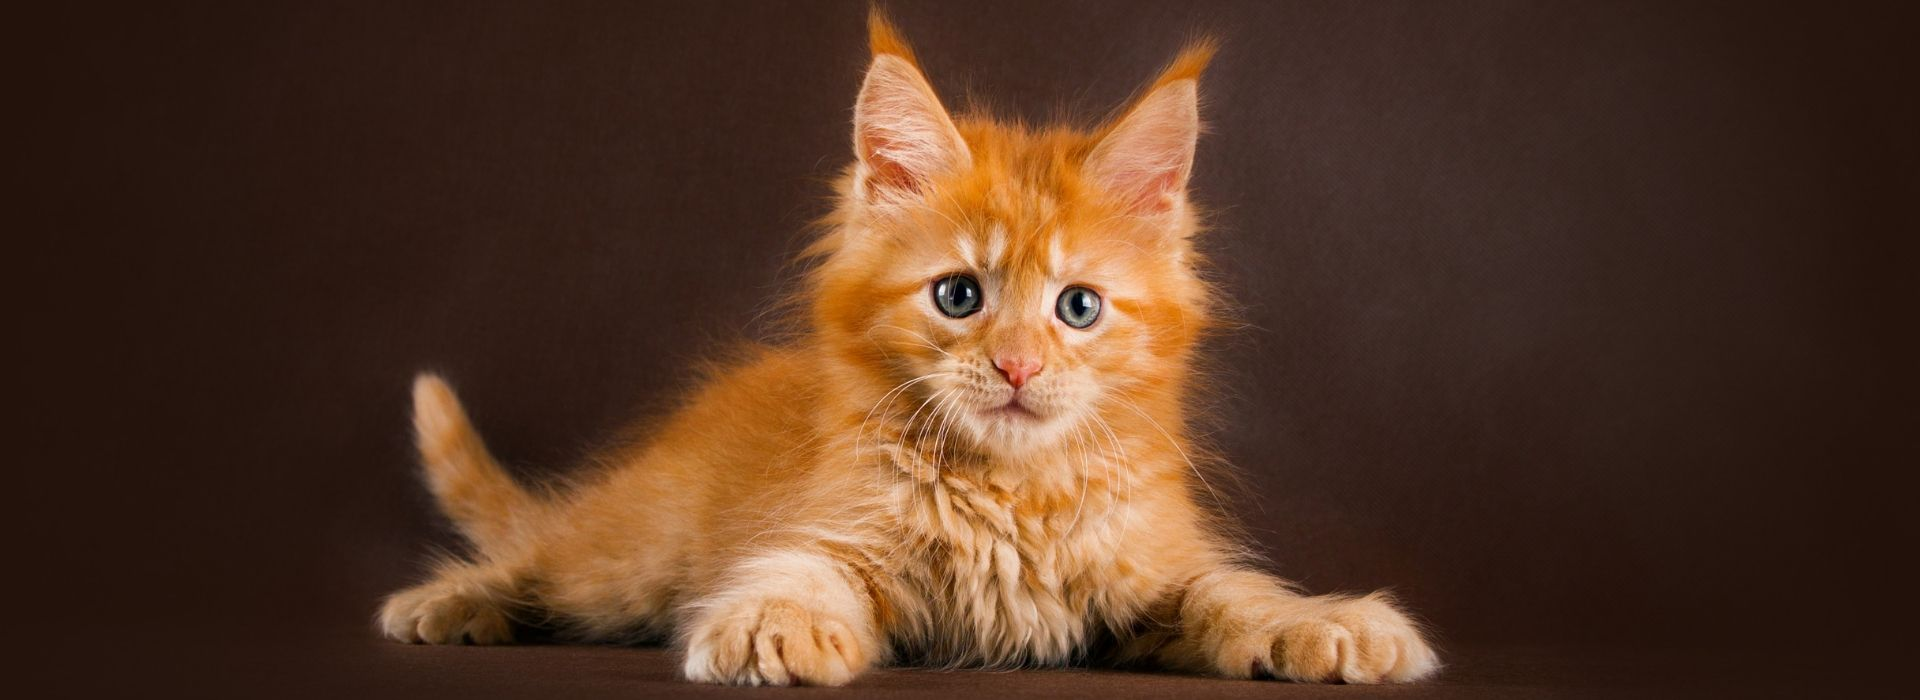 Chaton maine coon roux